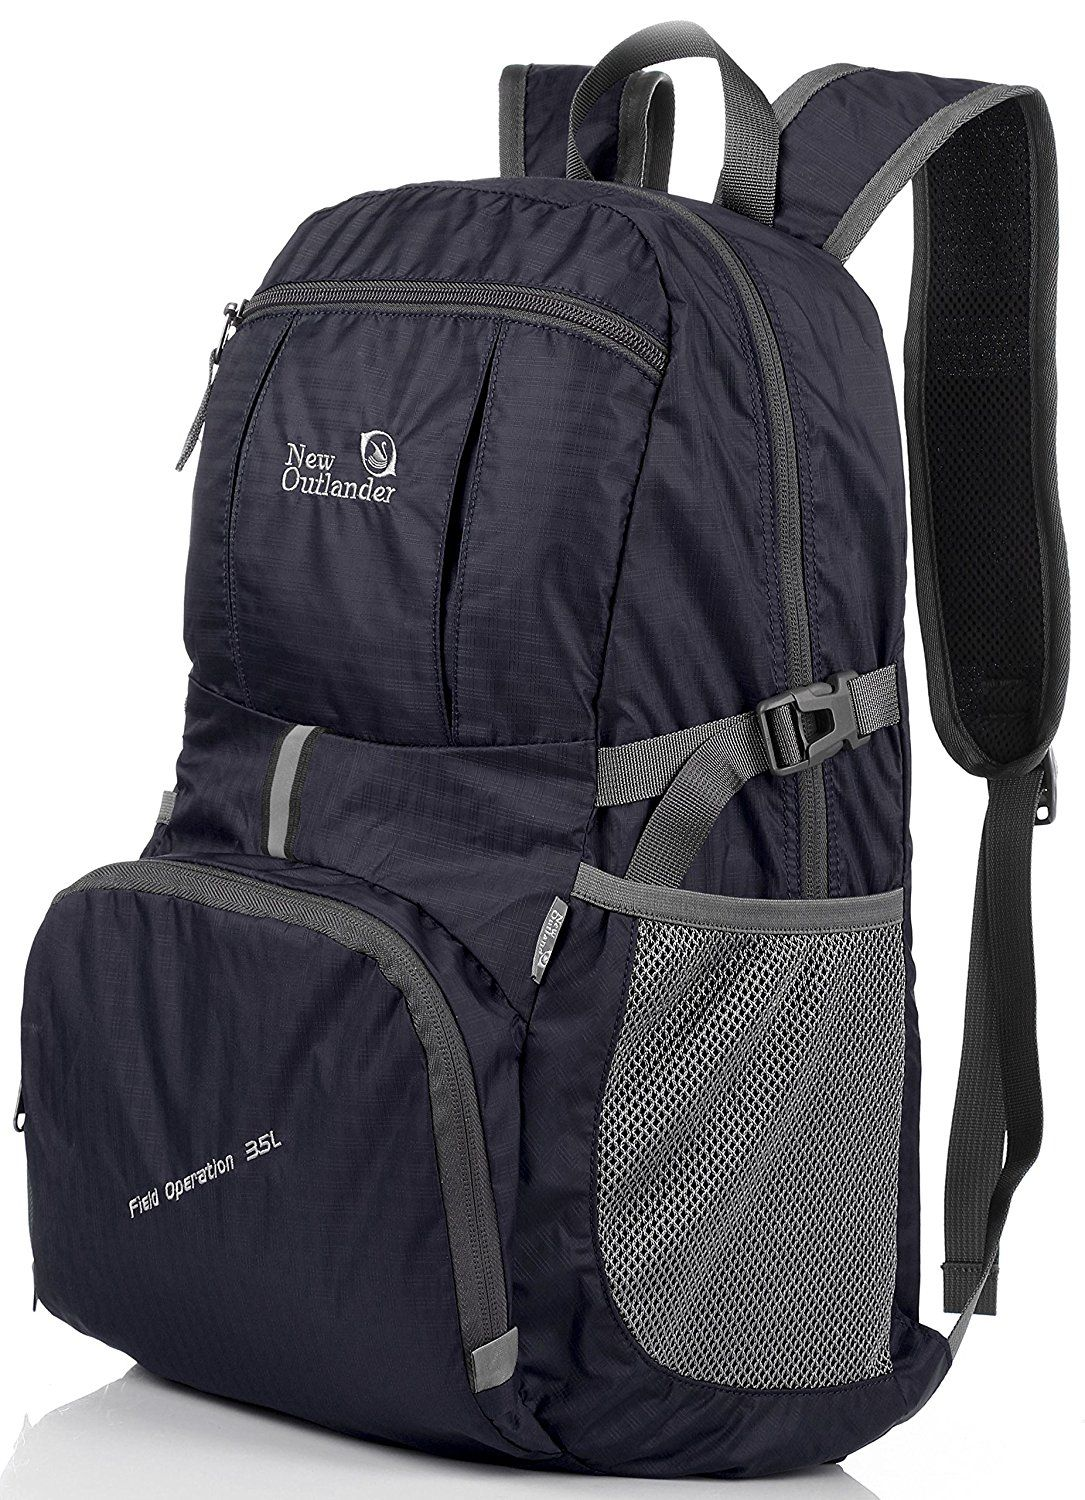 8f71748cf1 Outlander Packable Lightweight Travel Hiking Backpack Daypack (New Black)